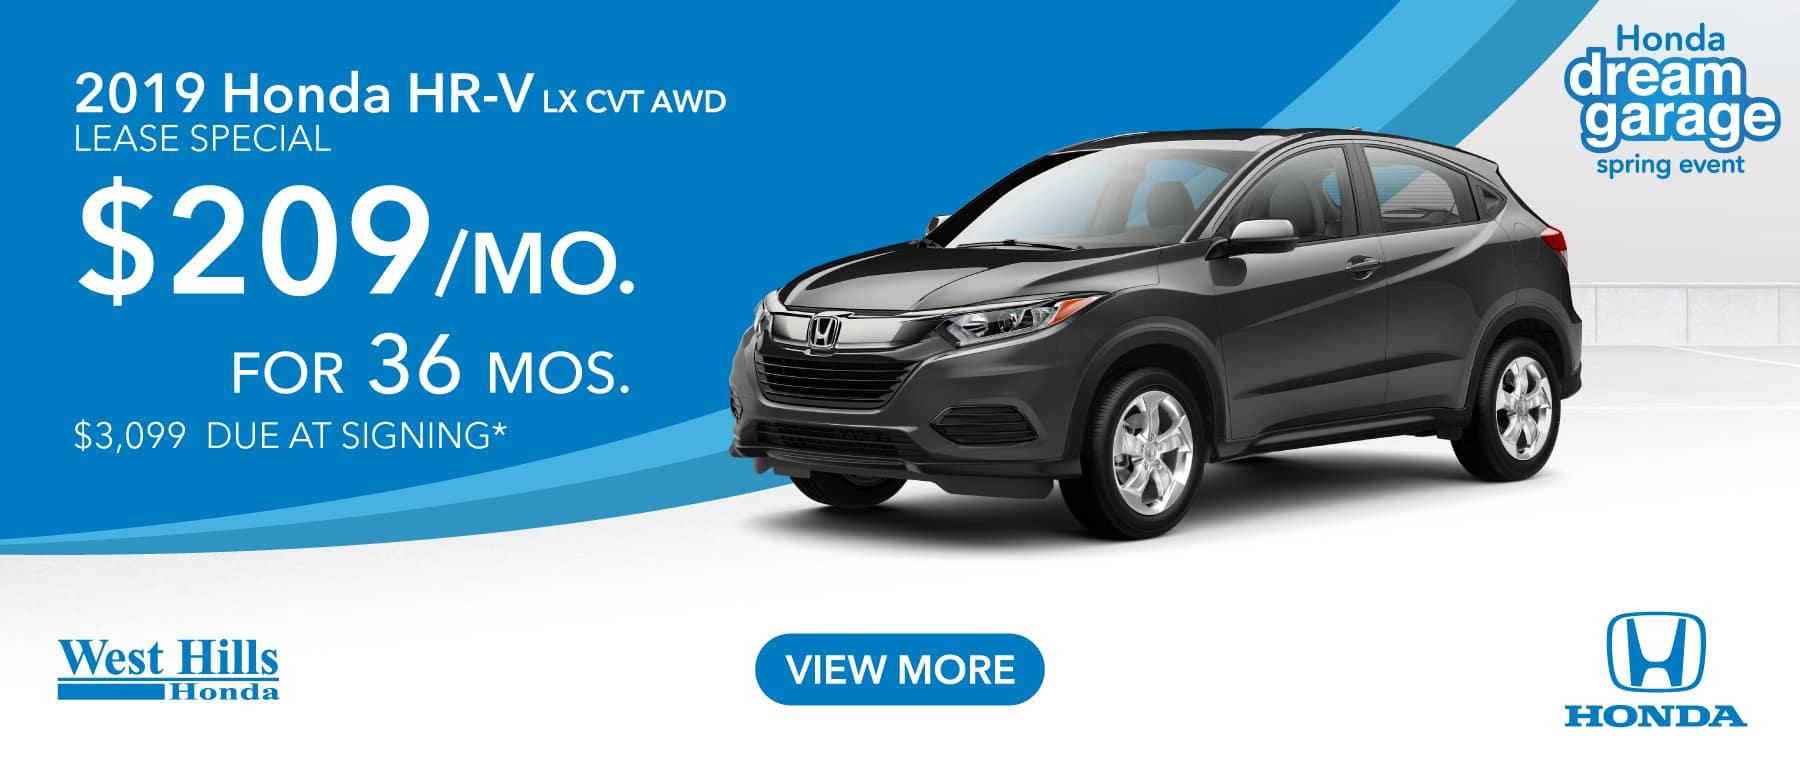 2019 Honda HR-V LX CVT AWD $209/mo. for 36 mos. $3,099 due at signing*    *Valid on 2019 Honda HR-V LX CVT AWD. $209 per mo. for 36 months. Lease with $3,099 due at signing; includes a $595 acquisition fee. Valid on VIN: 3CZRU6H35KG711361, 3CZRU6H35KG711330, 3CZRU6H35KM701799. MSRP is $22,915. No Security deposit required. Subject to credit approval. 36 monthly payments required. Not all lessees will qualify for lowest payment through participating lender. Residency restrictions apply. Lessee responsible for maintenance, excessive wear/tear and mileage over 12,000 miles per year at $0.15/mile. Option to purchase at lease end. Excludes state and local taxes, tags, registration and title, insurance and dealer charges. A negotiable dealer documentary service fee of up to $150 may be added to the sale price or capitalized cost. Offer expires 3/31/2019.